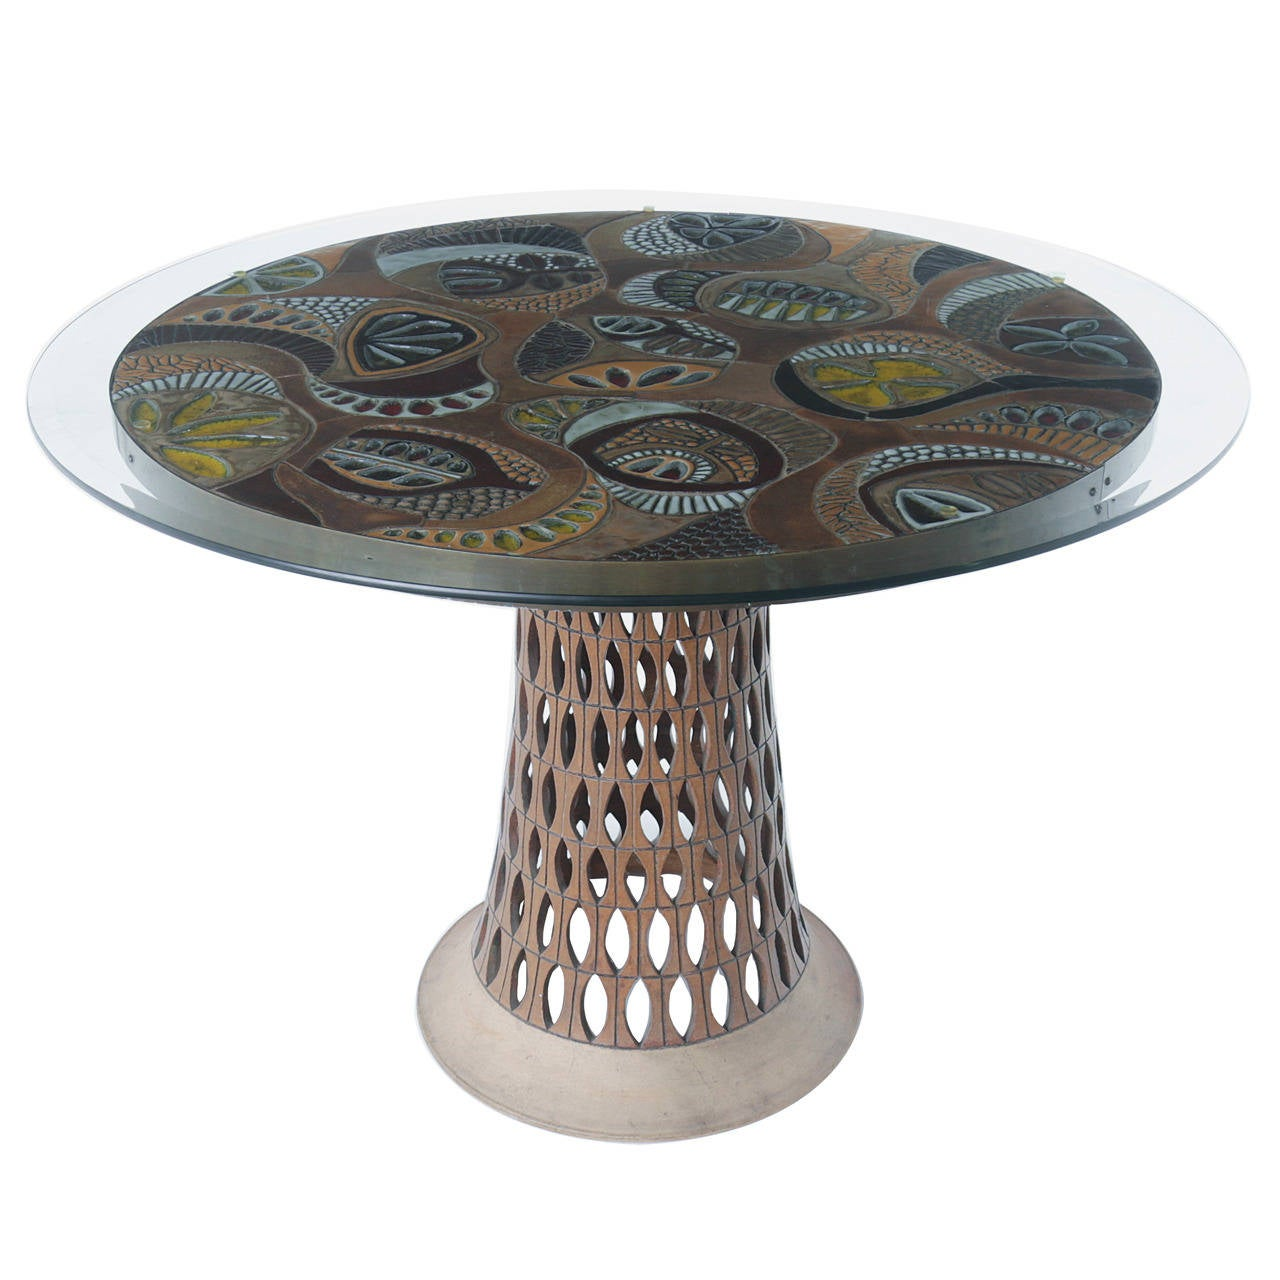 Brent bennett ceramic tile table with glass top at 1stdibs brent bennett ceramic tile table with glass top for sale dailygadgetfo Gallery